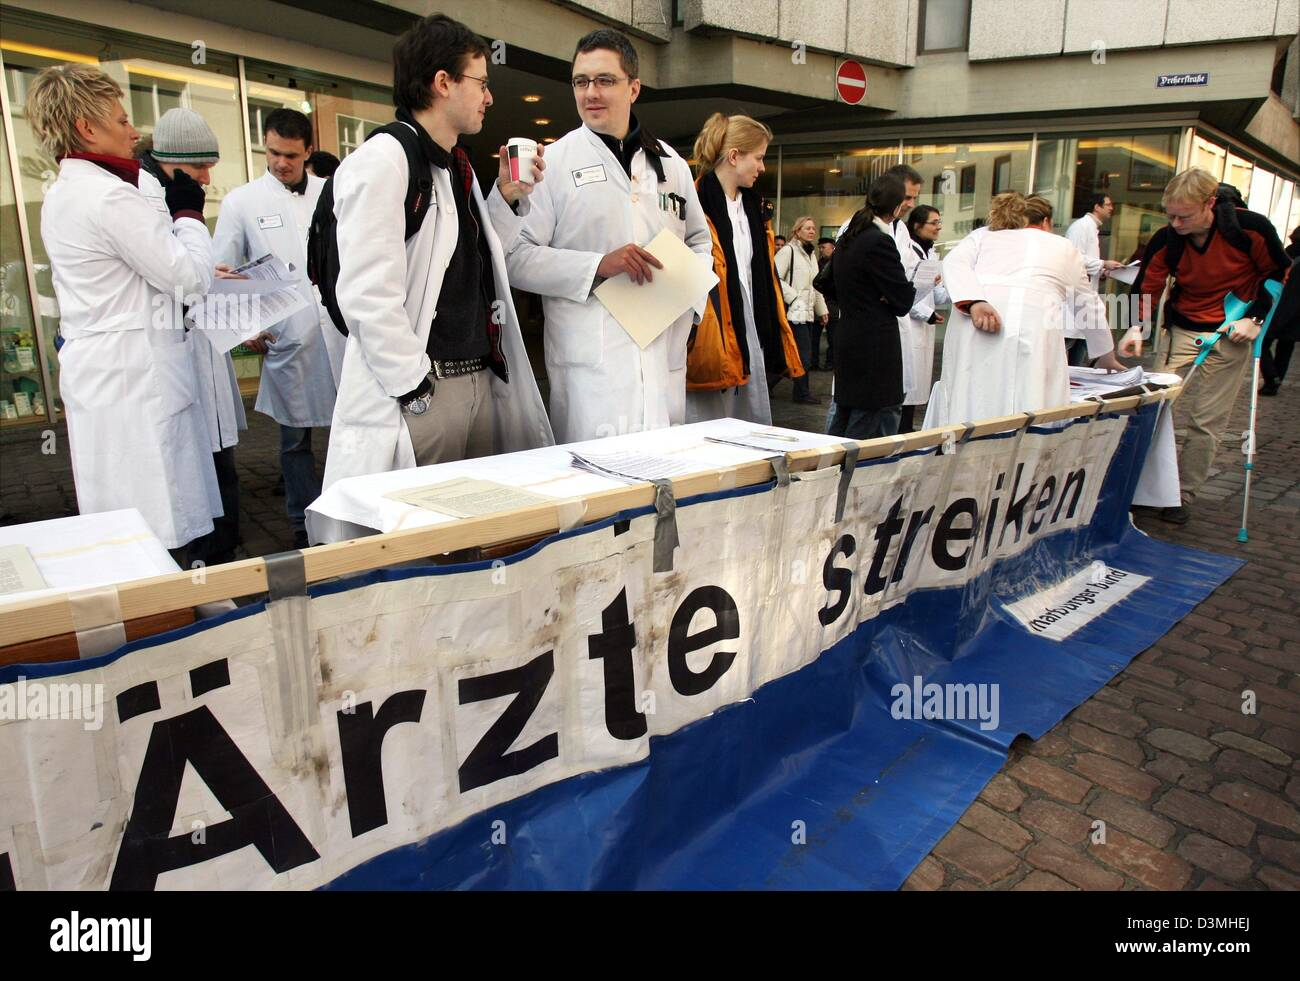 Striking physicians inform the public about their strike with a stall in the city centre of Freiburg, Germany, Monday - Stock Image